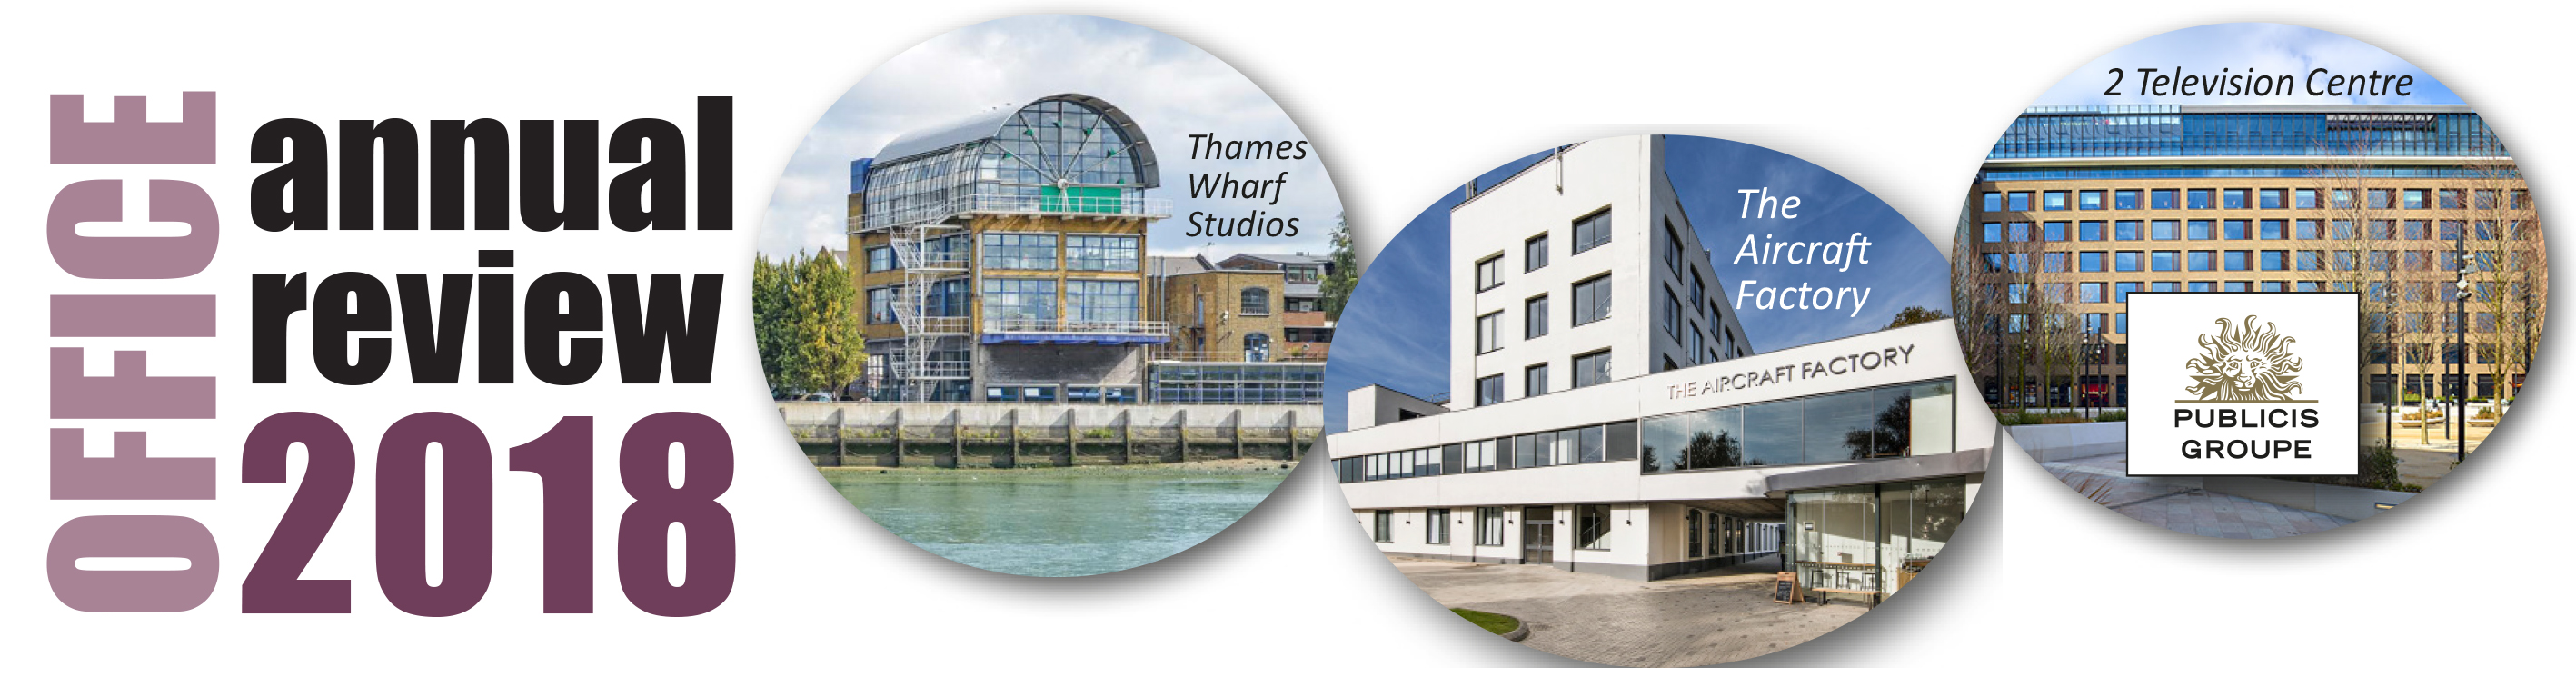 West-London-Office-Annual-Review-2018-Theames-Wharf-Studios-The-Aircraft-Factory-2-Television-Centre-Publicis.